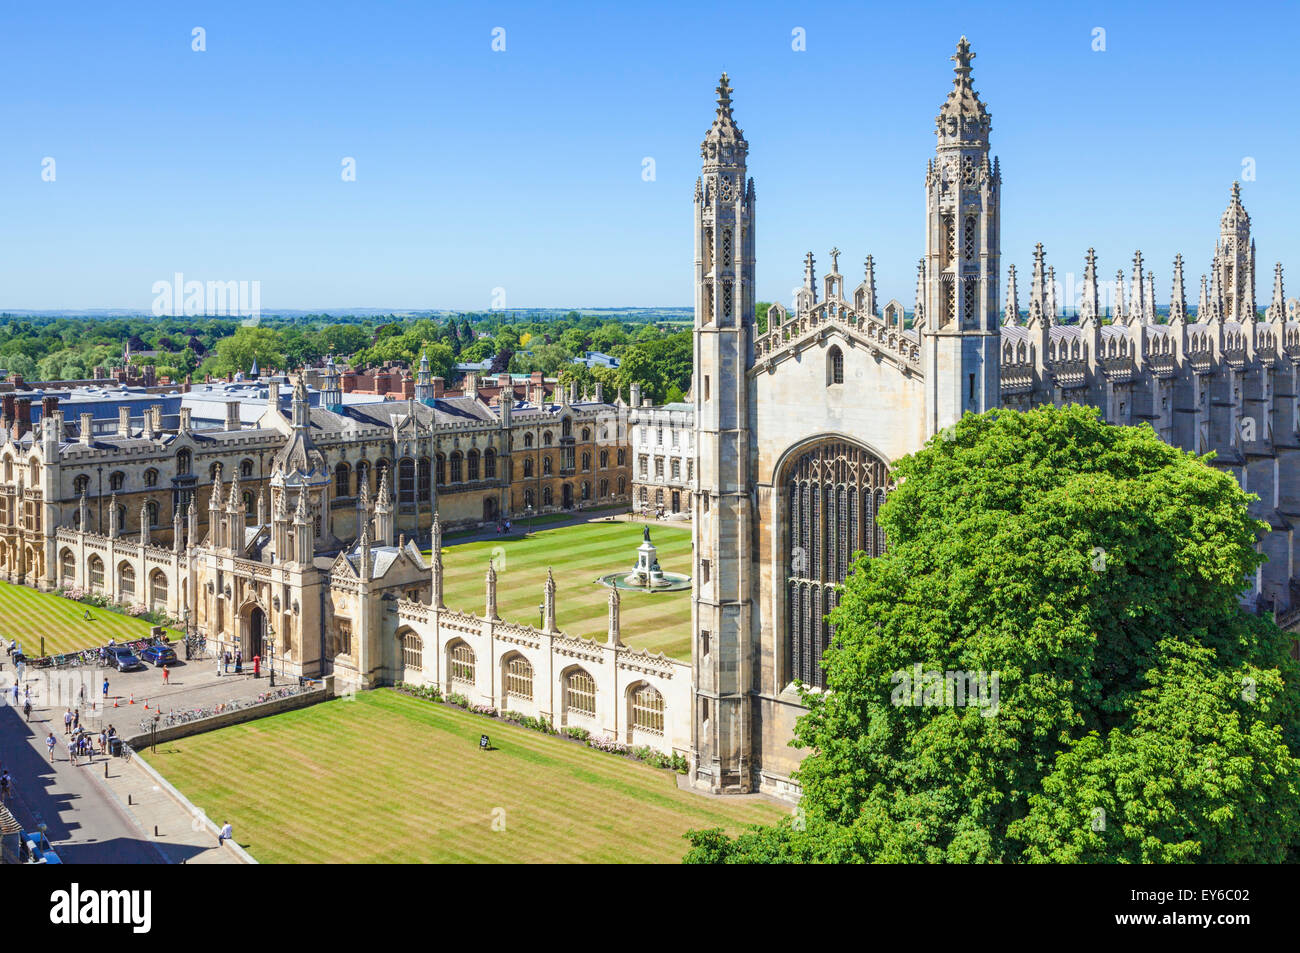 Kings college chapel and kings college Cambridge university Cambridgeshire England UK GB EU Europe - Stock Image